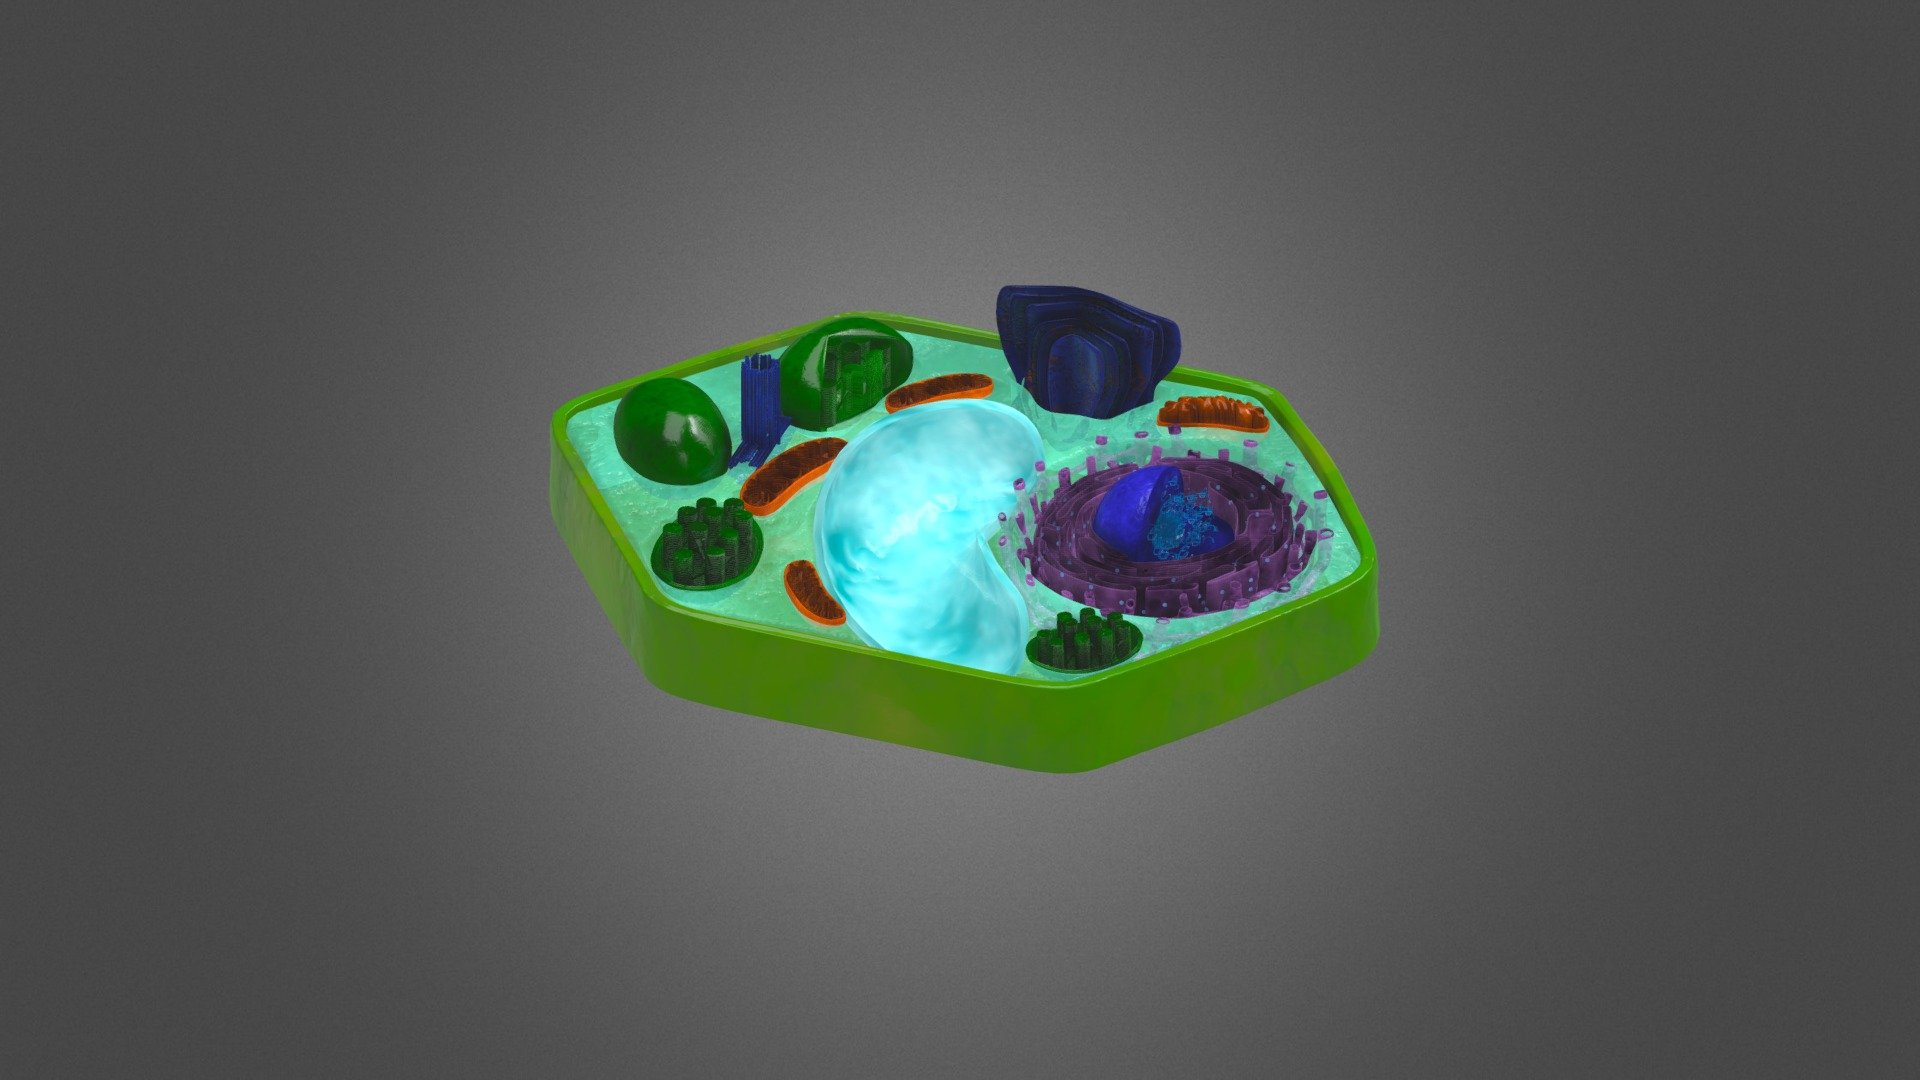 Plant Cell Organelles - Download Free 3D model by ...